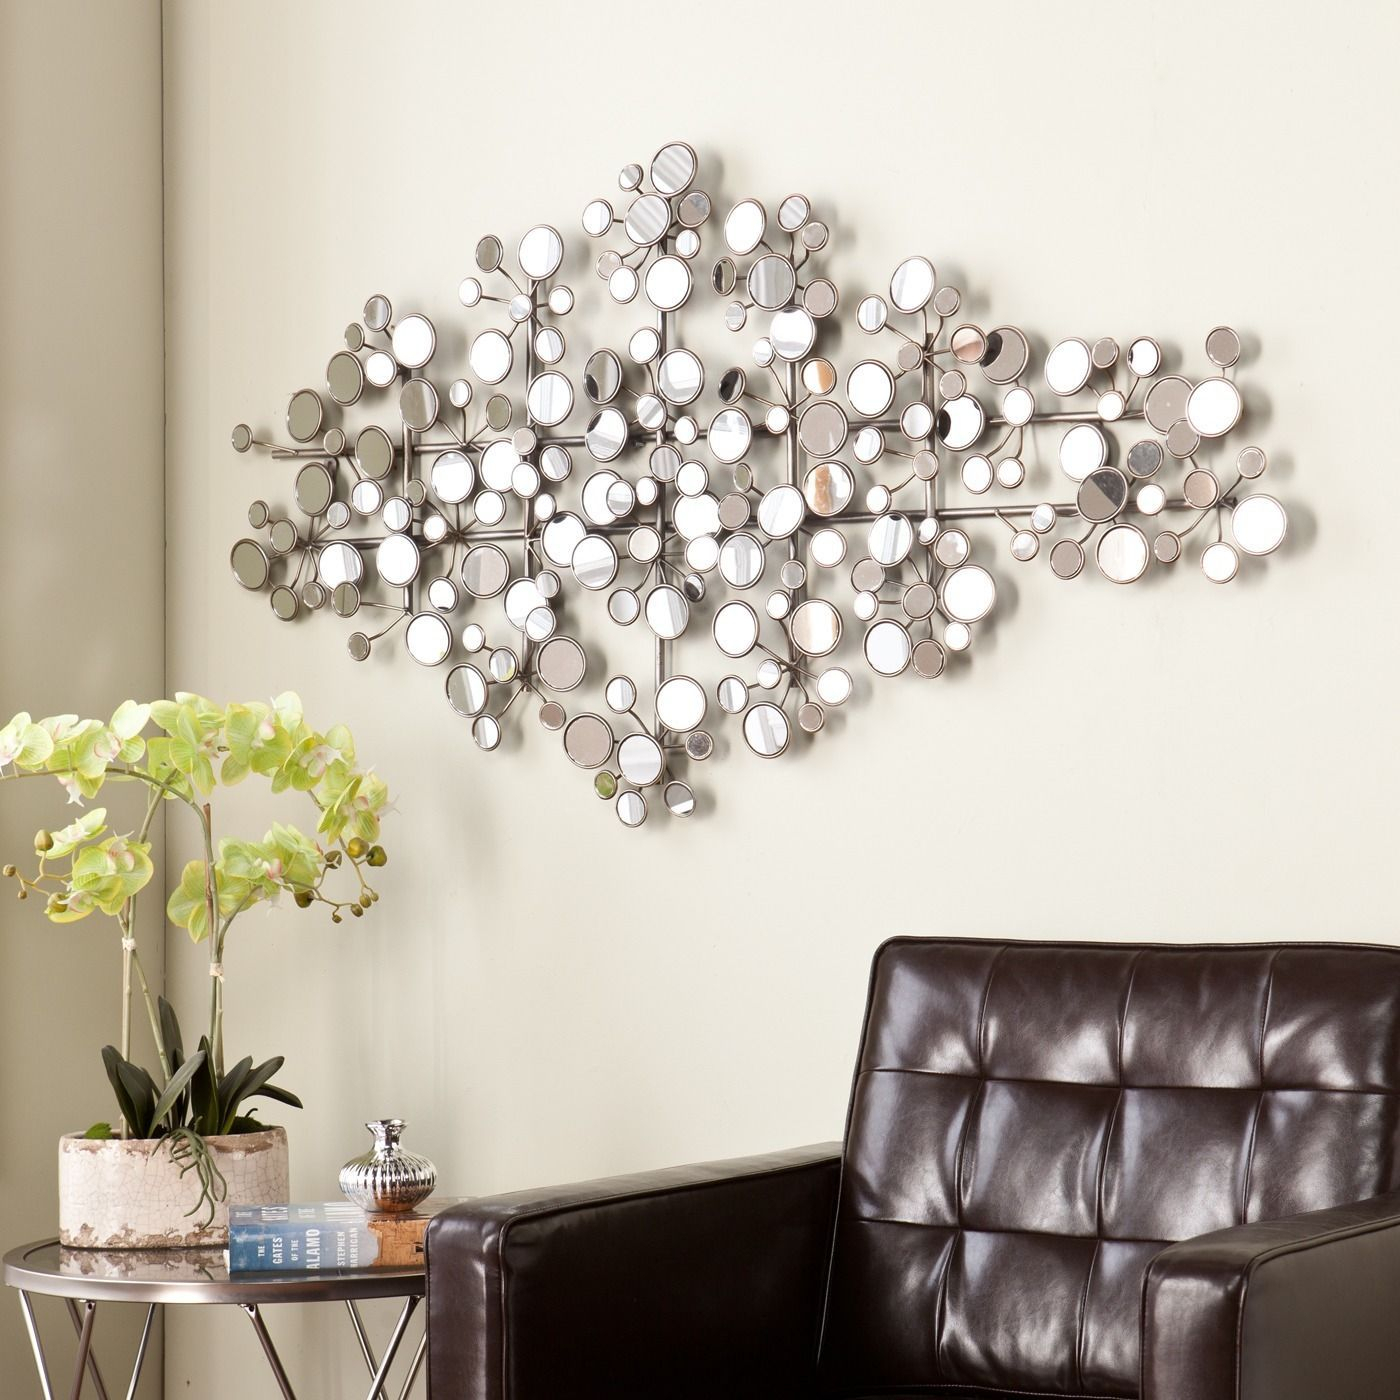 This Upton Home Olivia Mirrored Metal Wall Sculpture Intended For Alvis Traditional Metal Wall Decor (View 5 of 30)